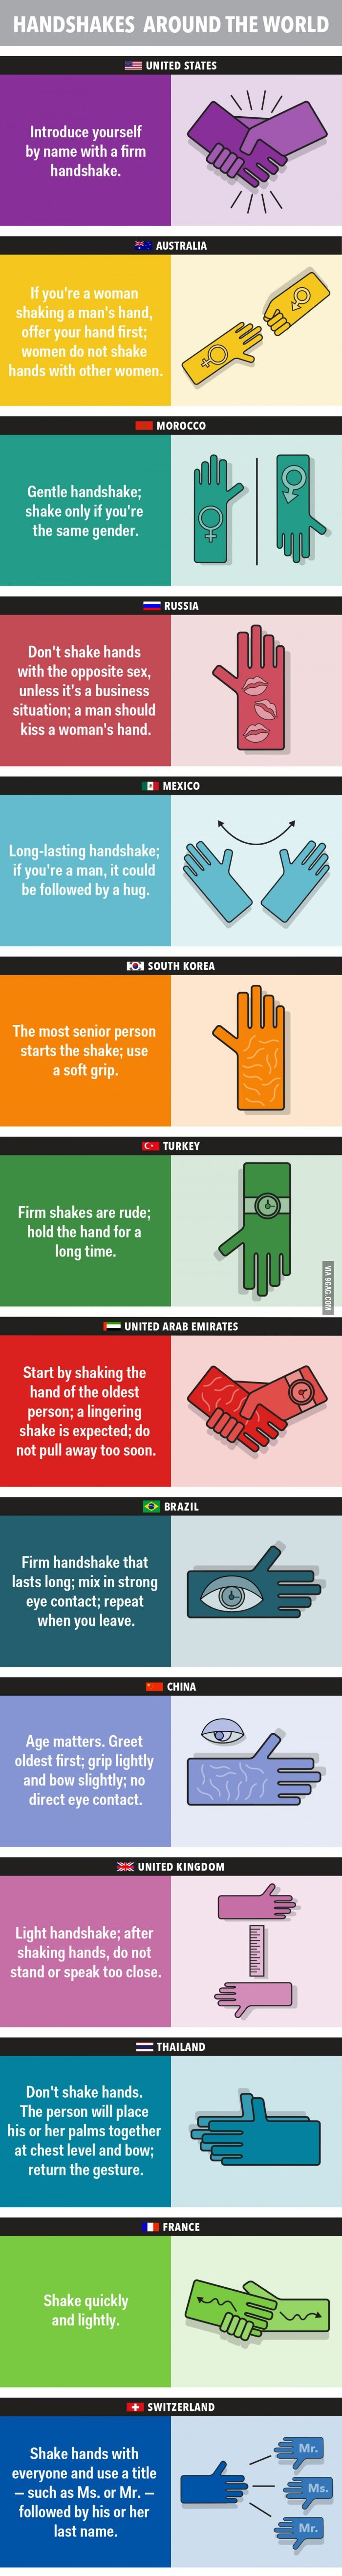 Handshakes From Around the World. This will be so helpful when traveling!